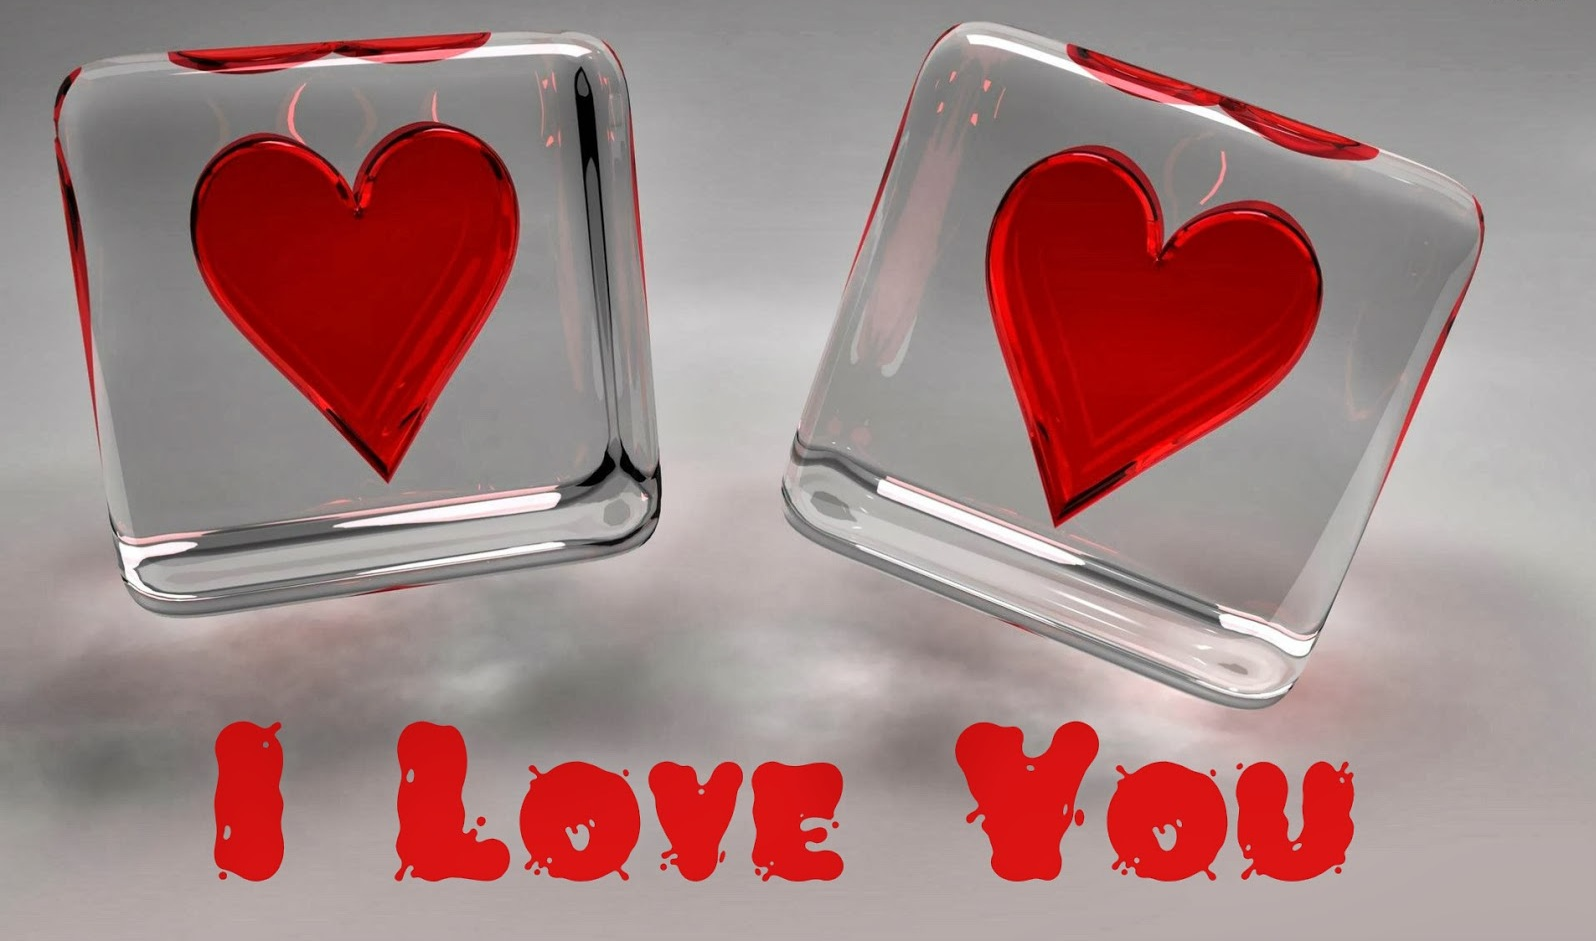 Love Wallpaper Of 2015 : I Love You Wallpapers, Pictures, Images